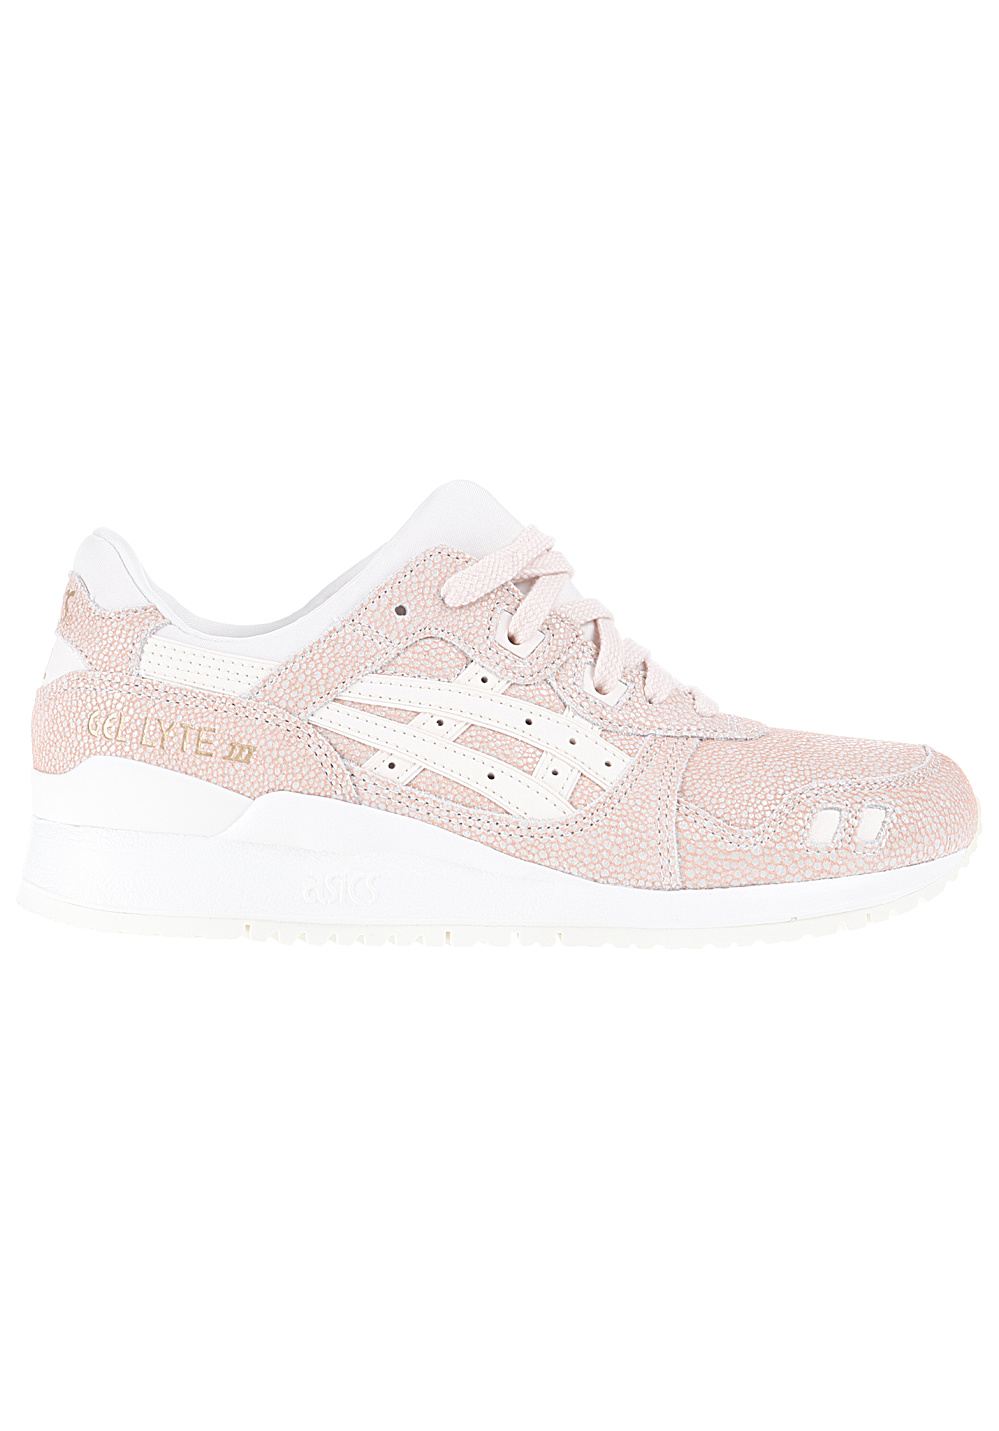 Asics Tiger Gel Lyte III Sneakers for Women Pink